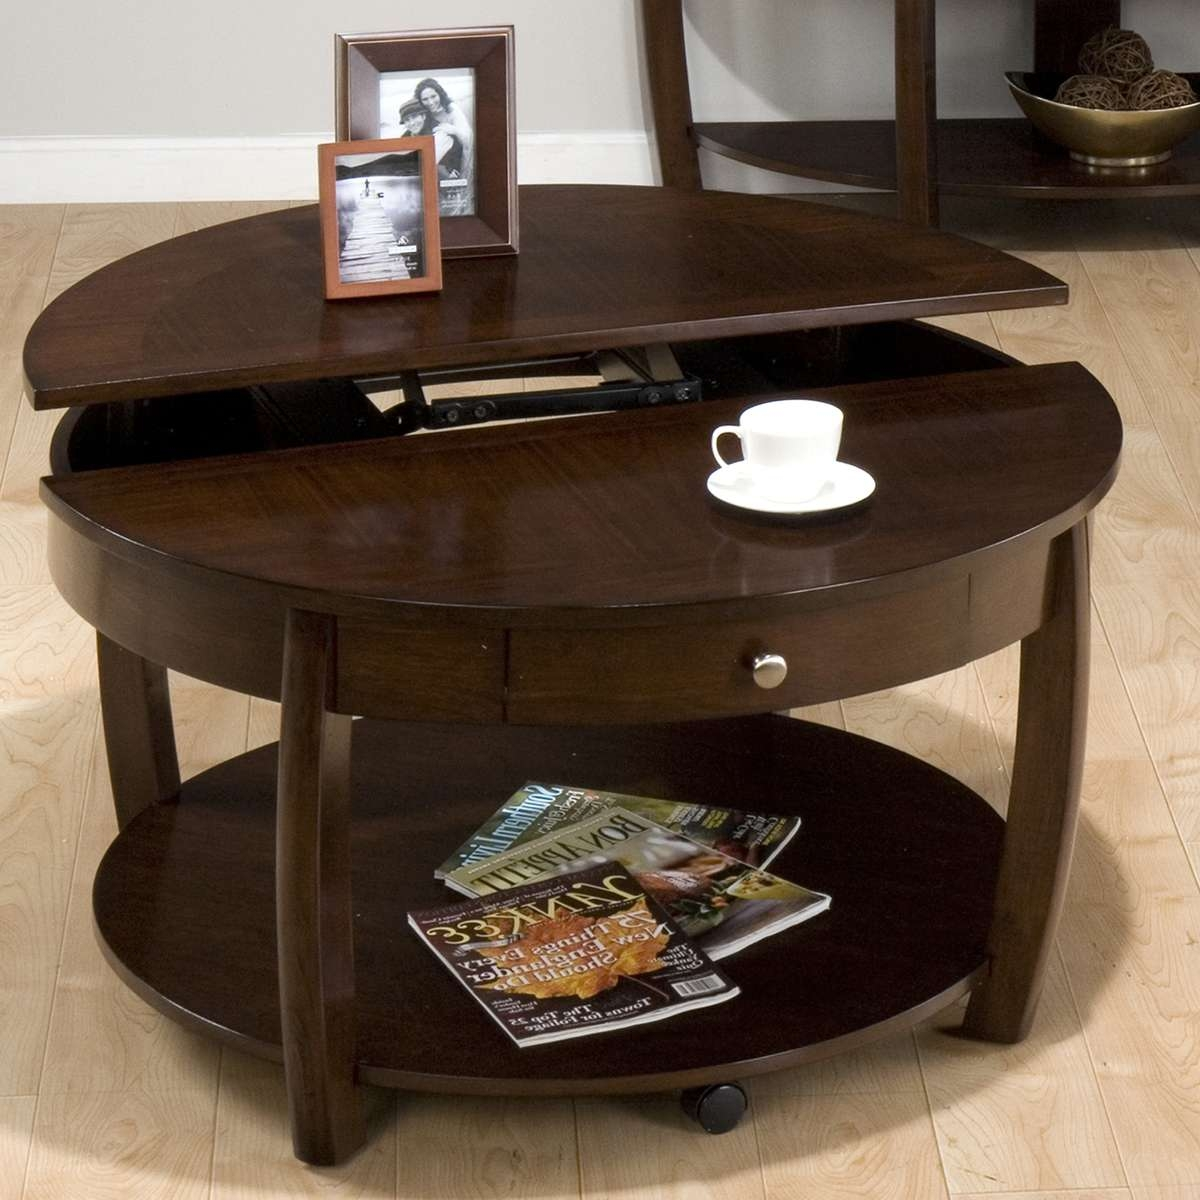 2018 Circular Coffee Tables With Storage In The Round Coffee Tables With Storage – The Simple And Compact (View 2 of 20)